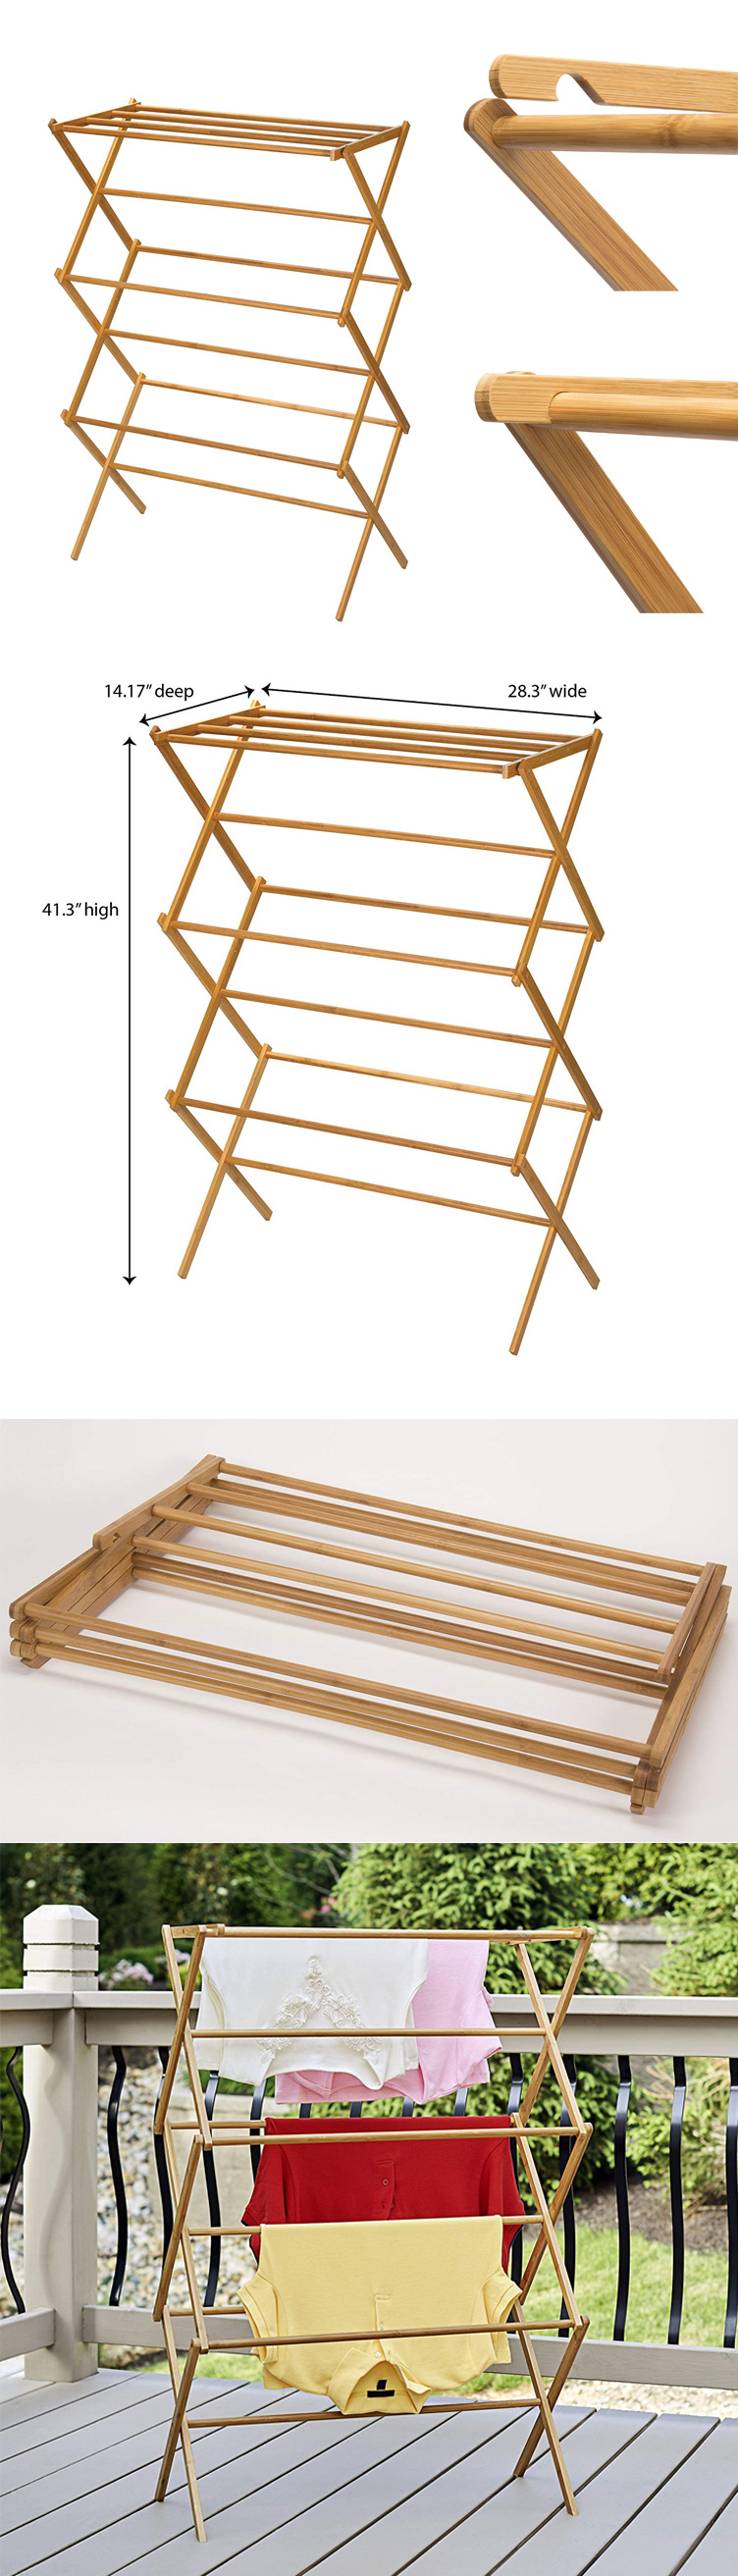 Foldable Bamboo Wooden Clothes Drying Rack